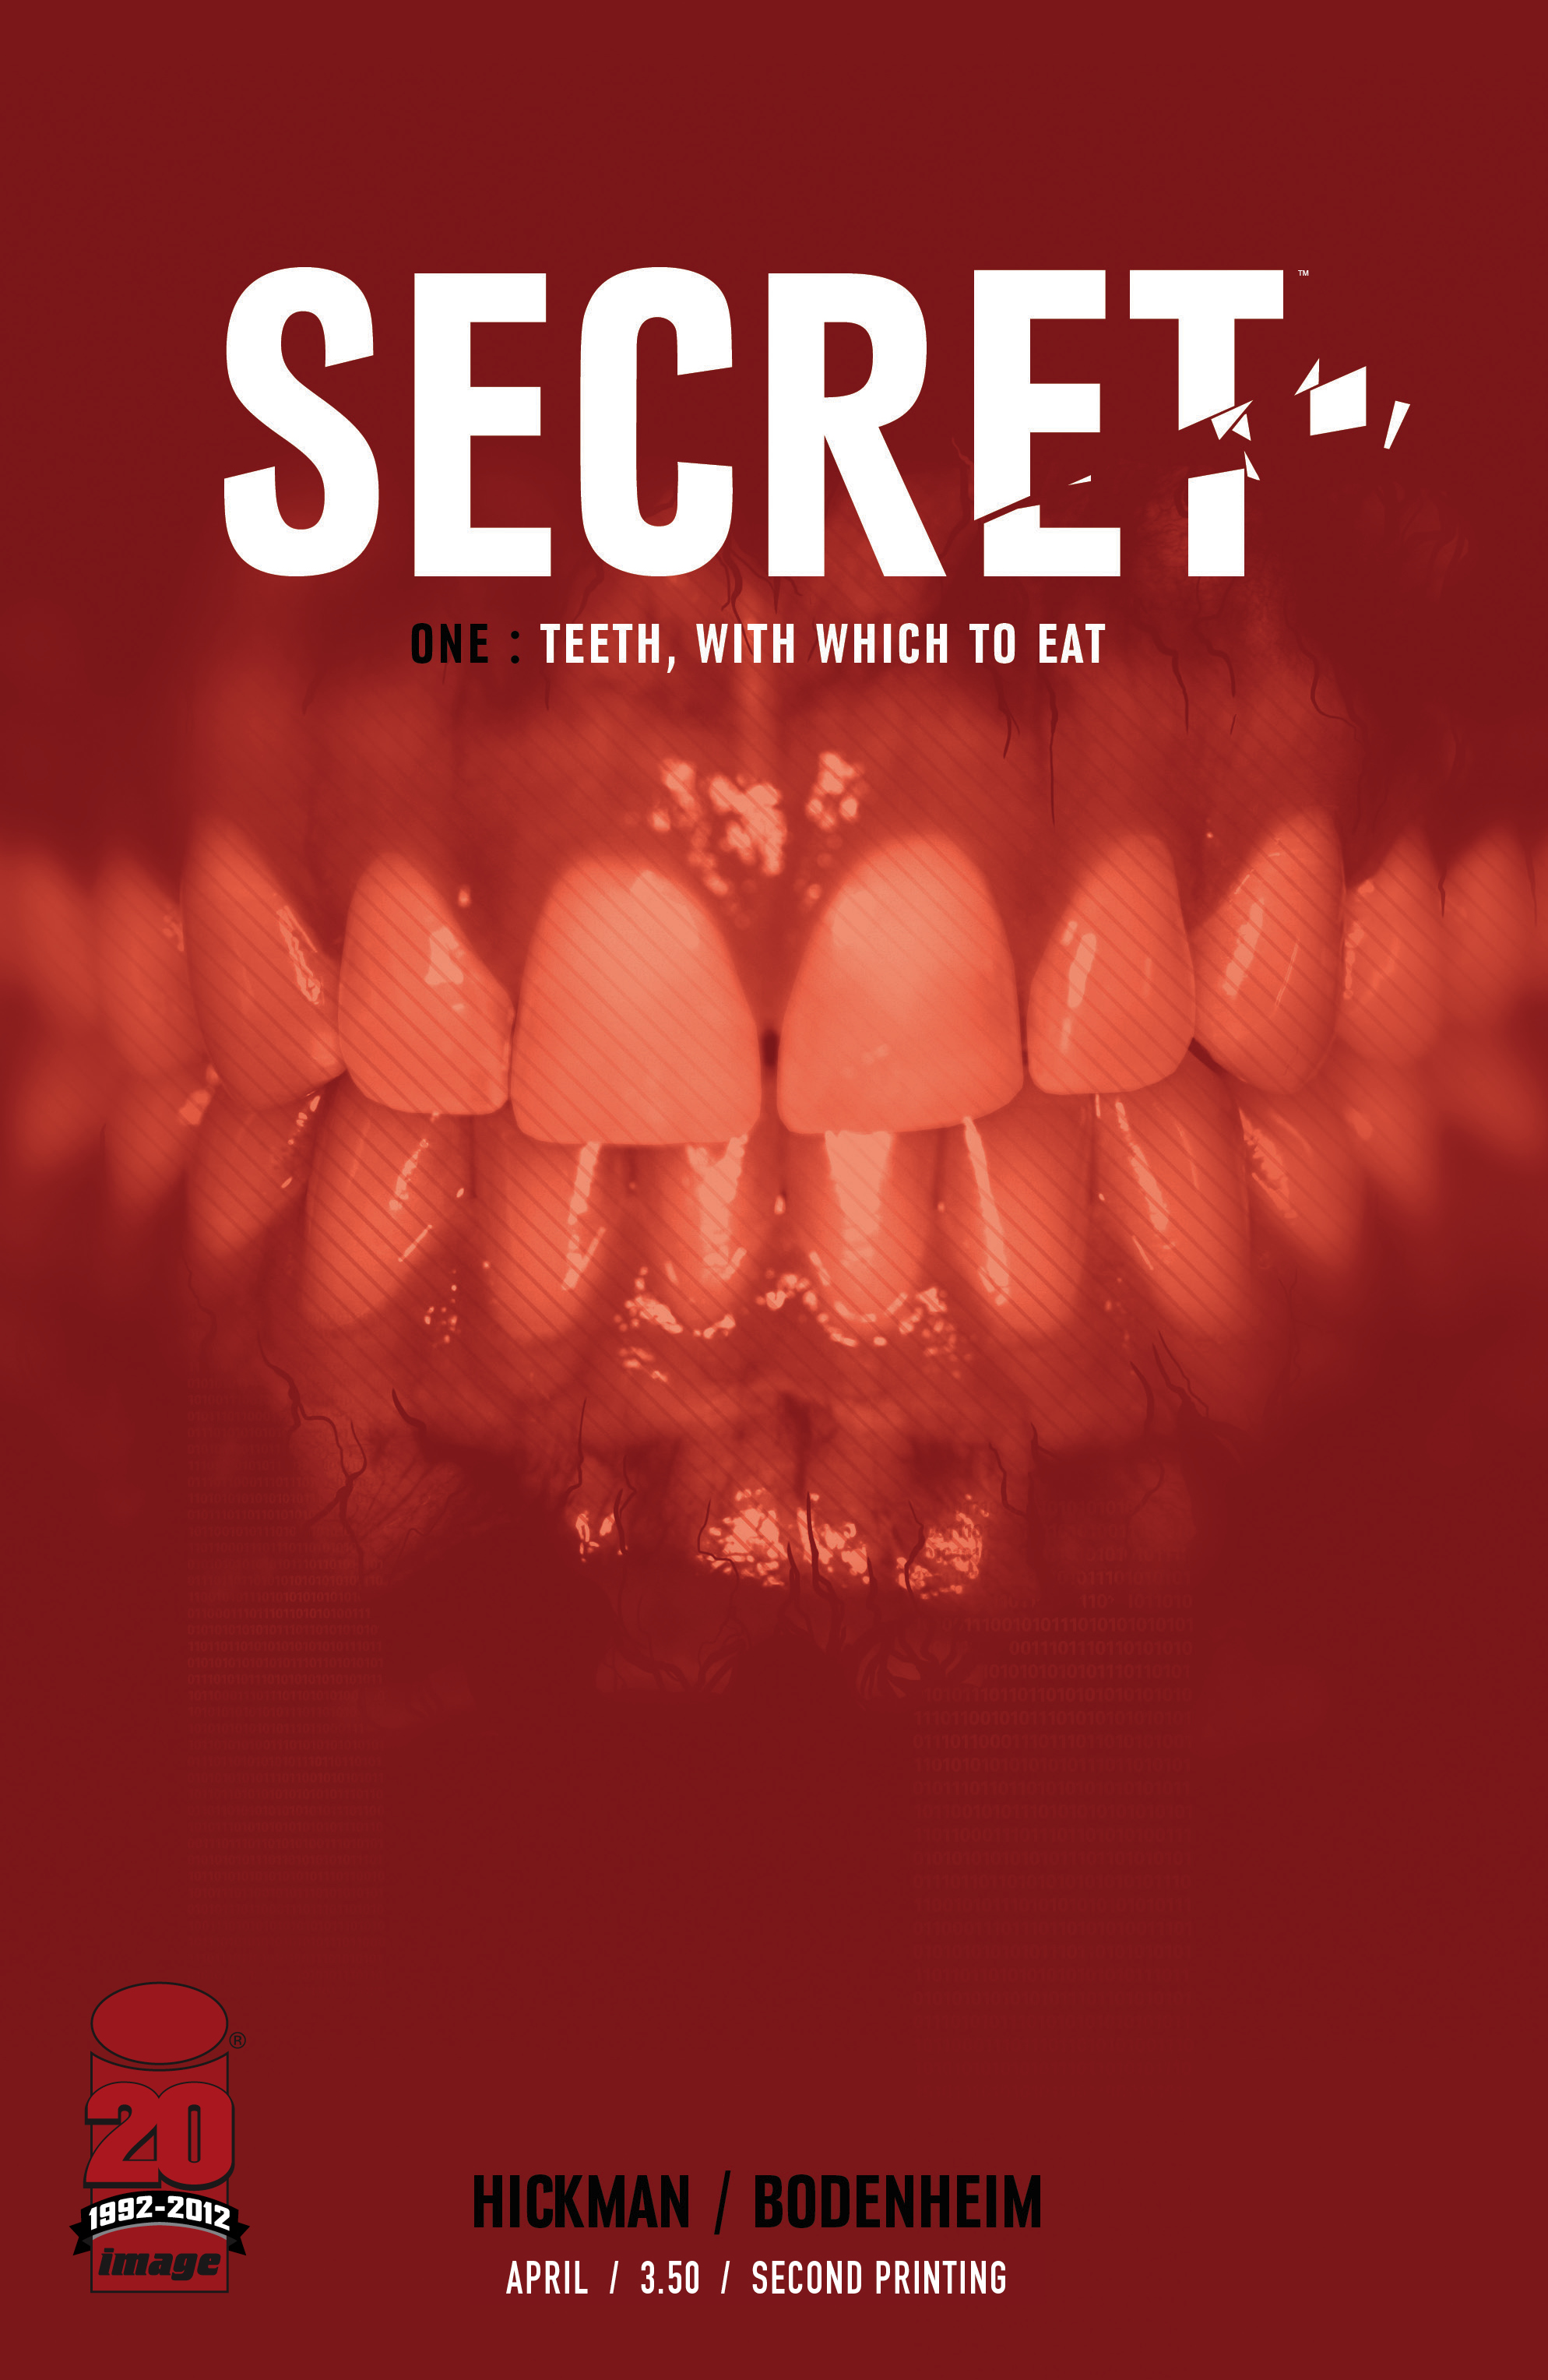 SECRET from Image comics sells out, goes into second print